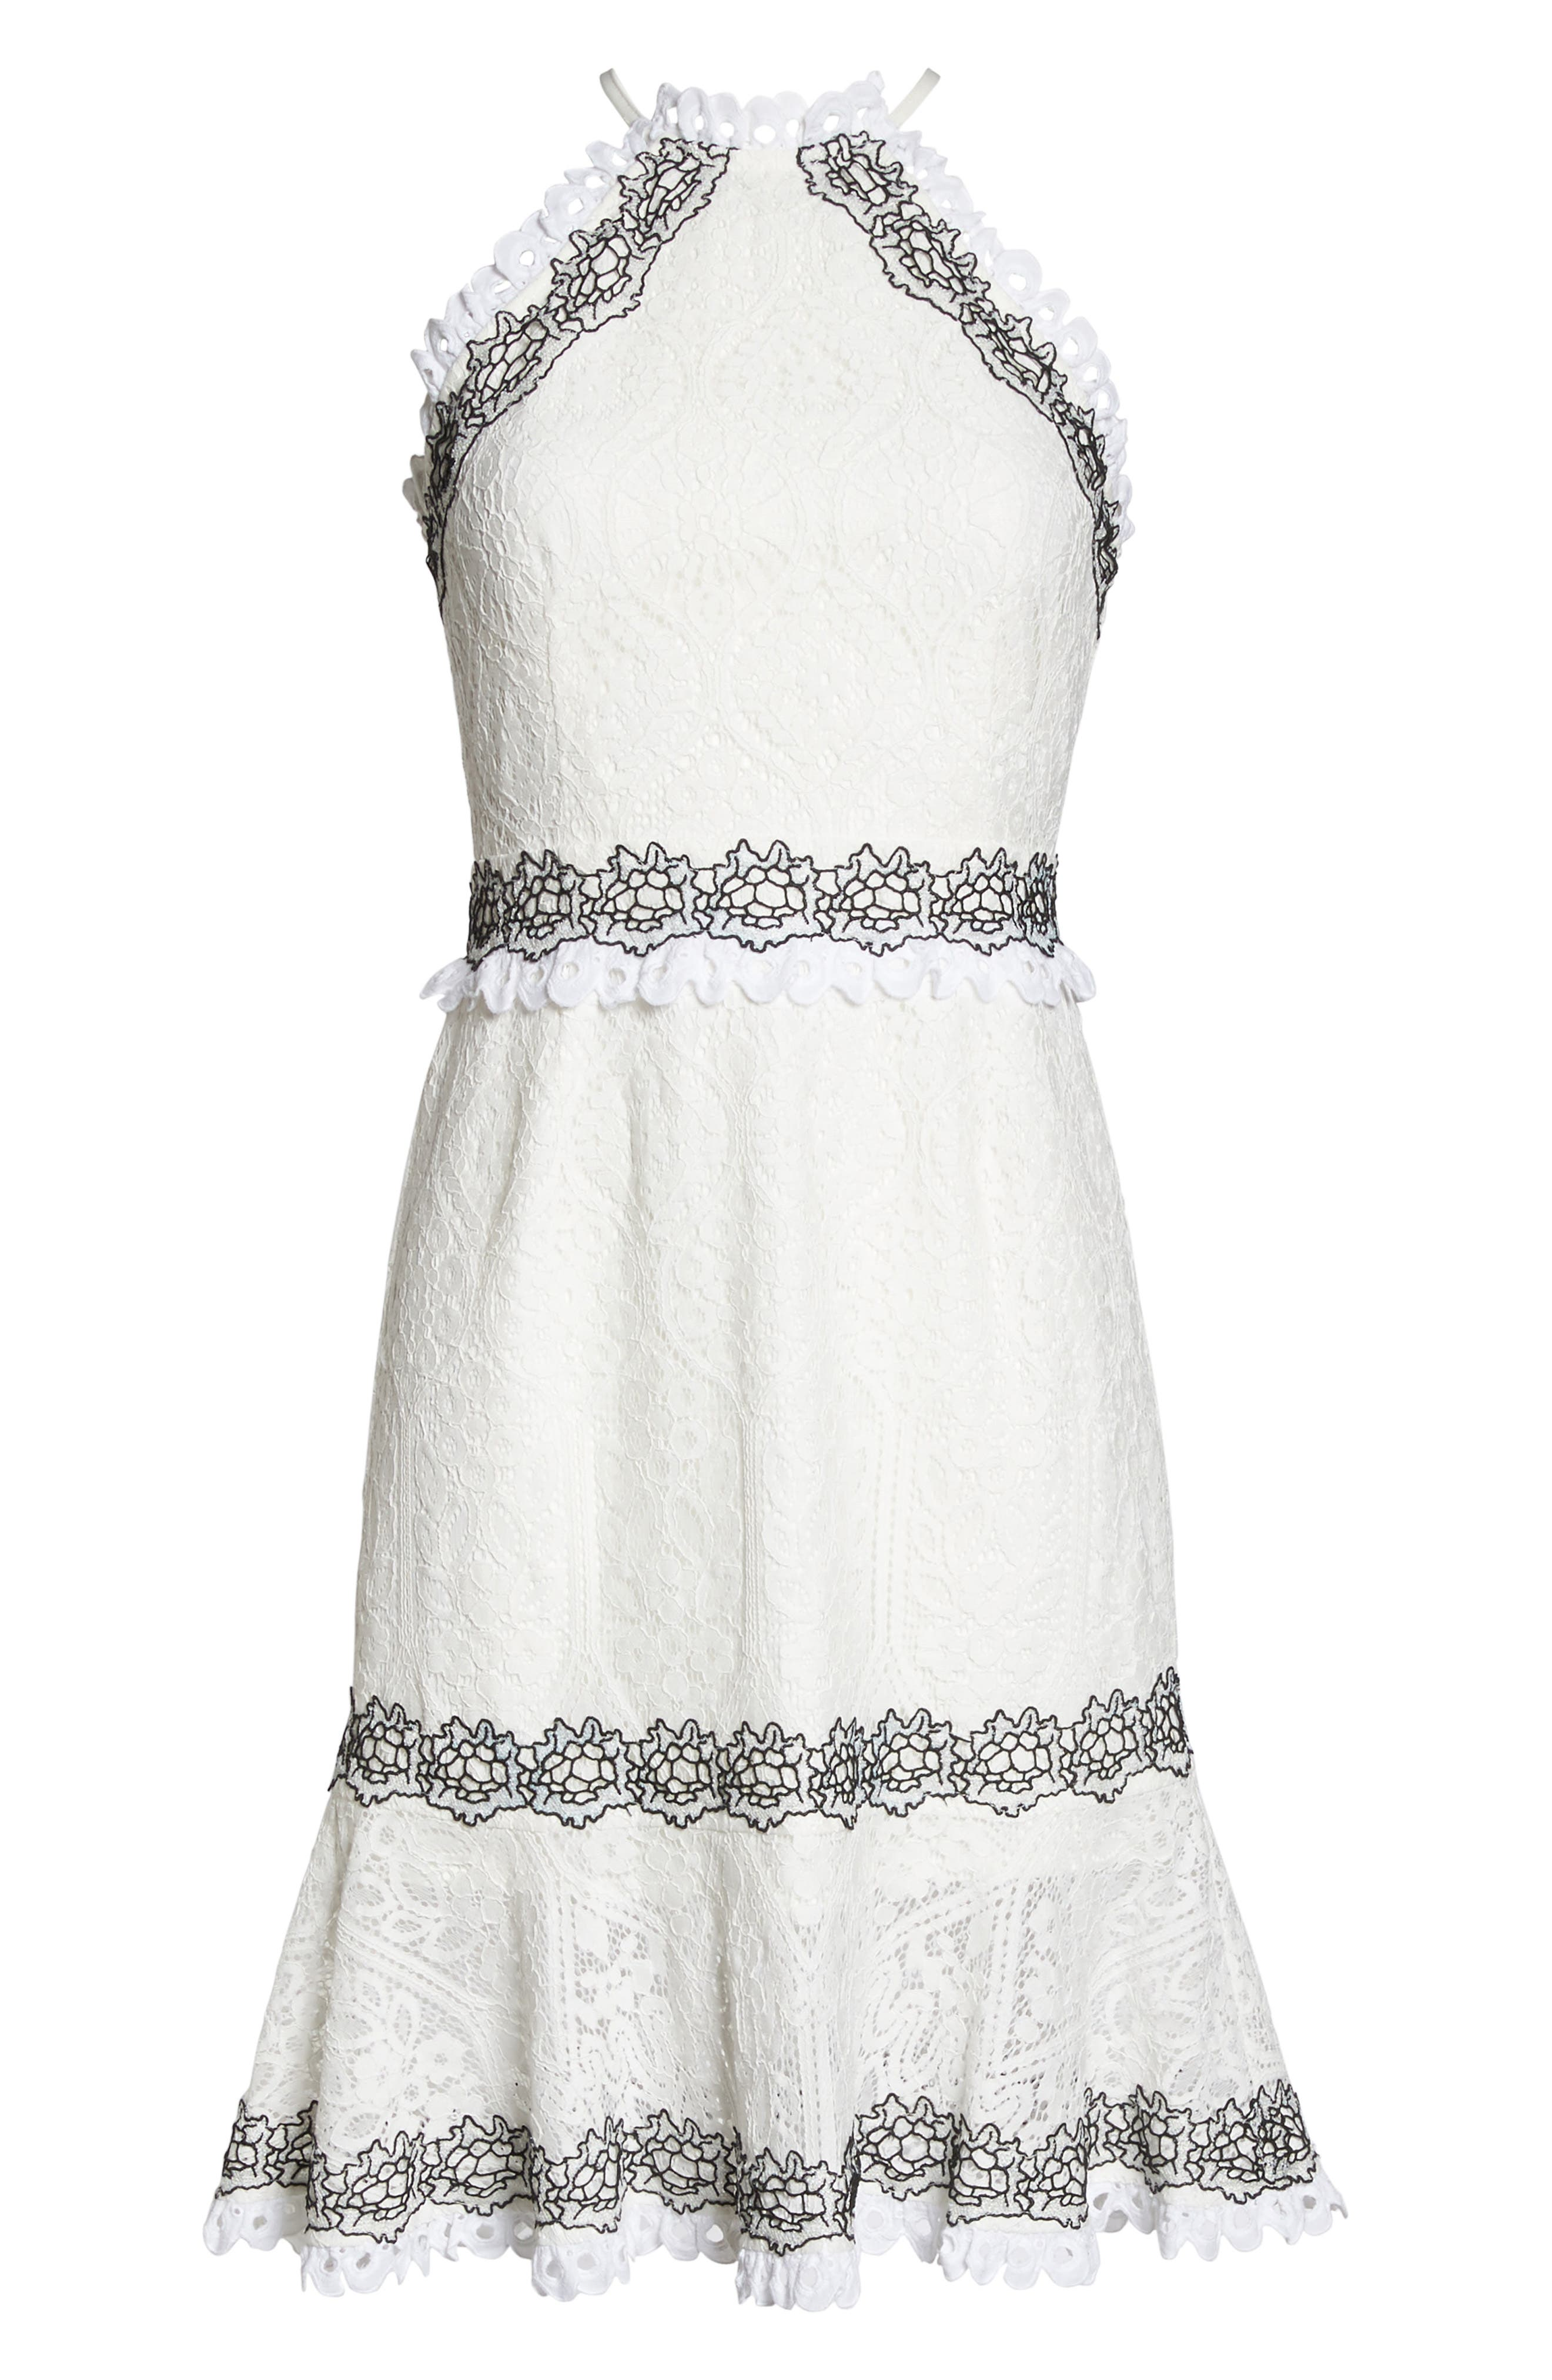 Frances Embroidered Lace Halter Dress,                             Alternate thumbnail 6, color,                             Offwhite